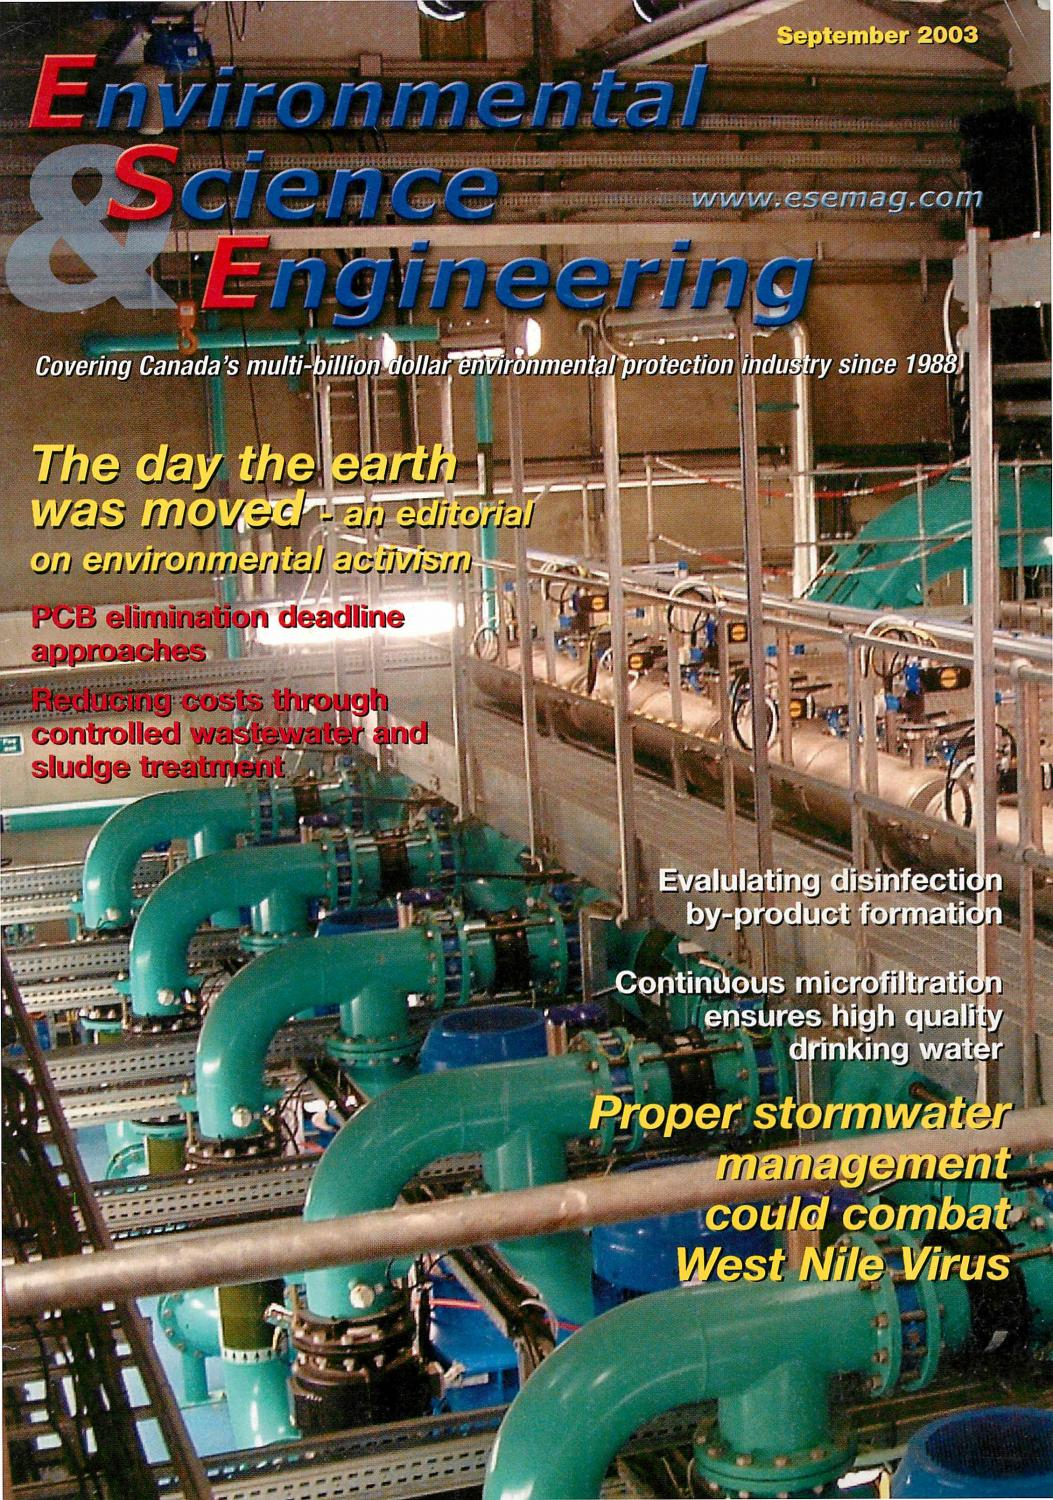 Environmental Science Engineering Magazine Esemag September 2003 Land Rover D90 O Demeter Wiring Diagram By And Issuu